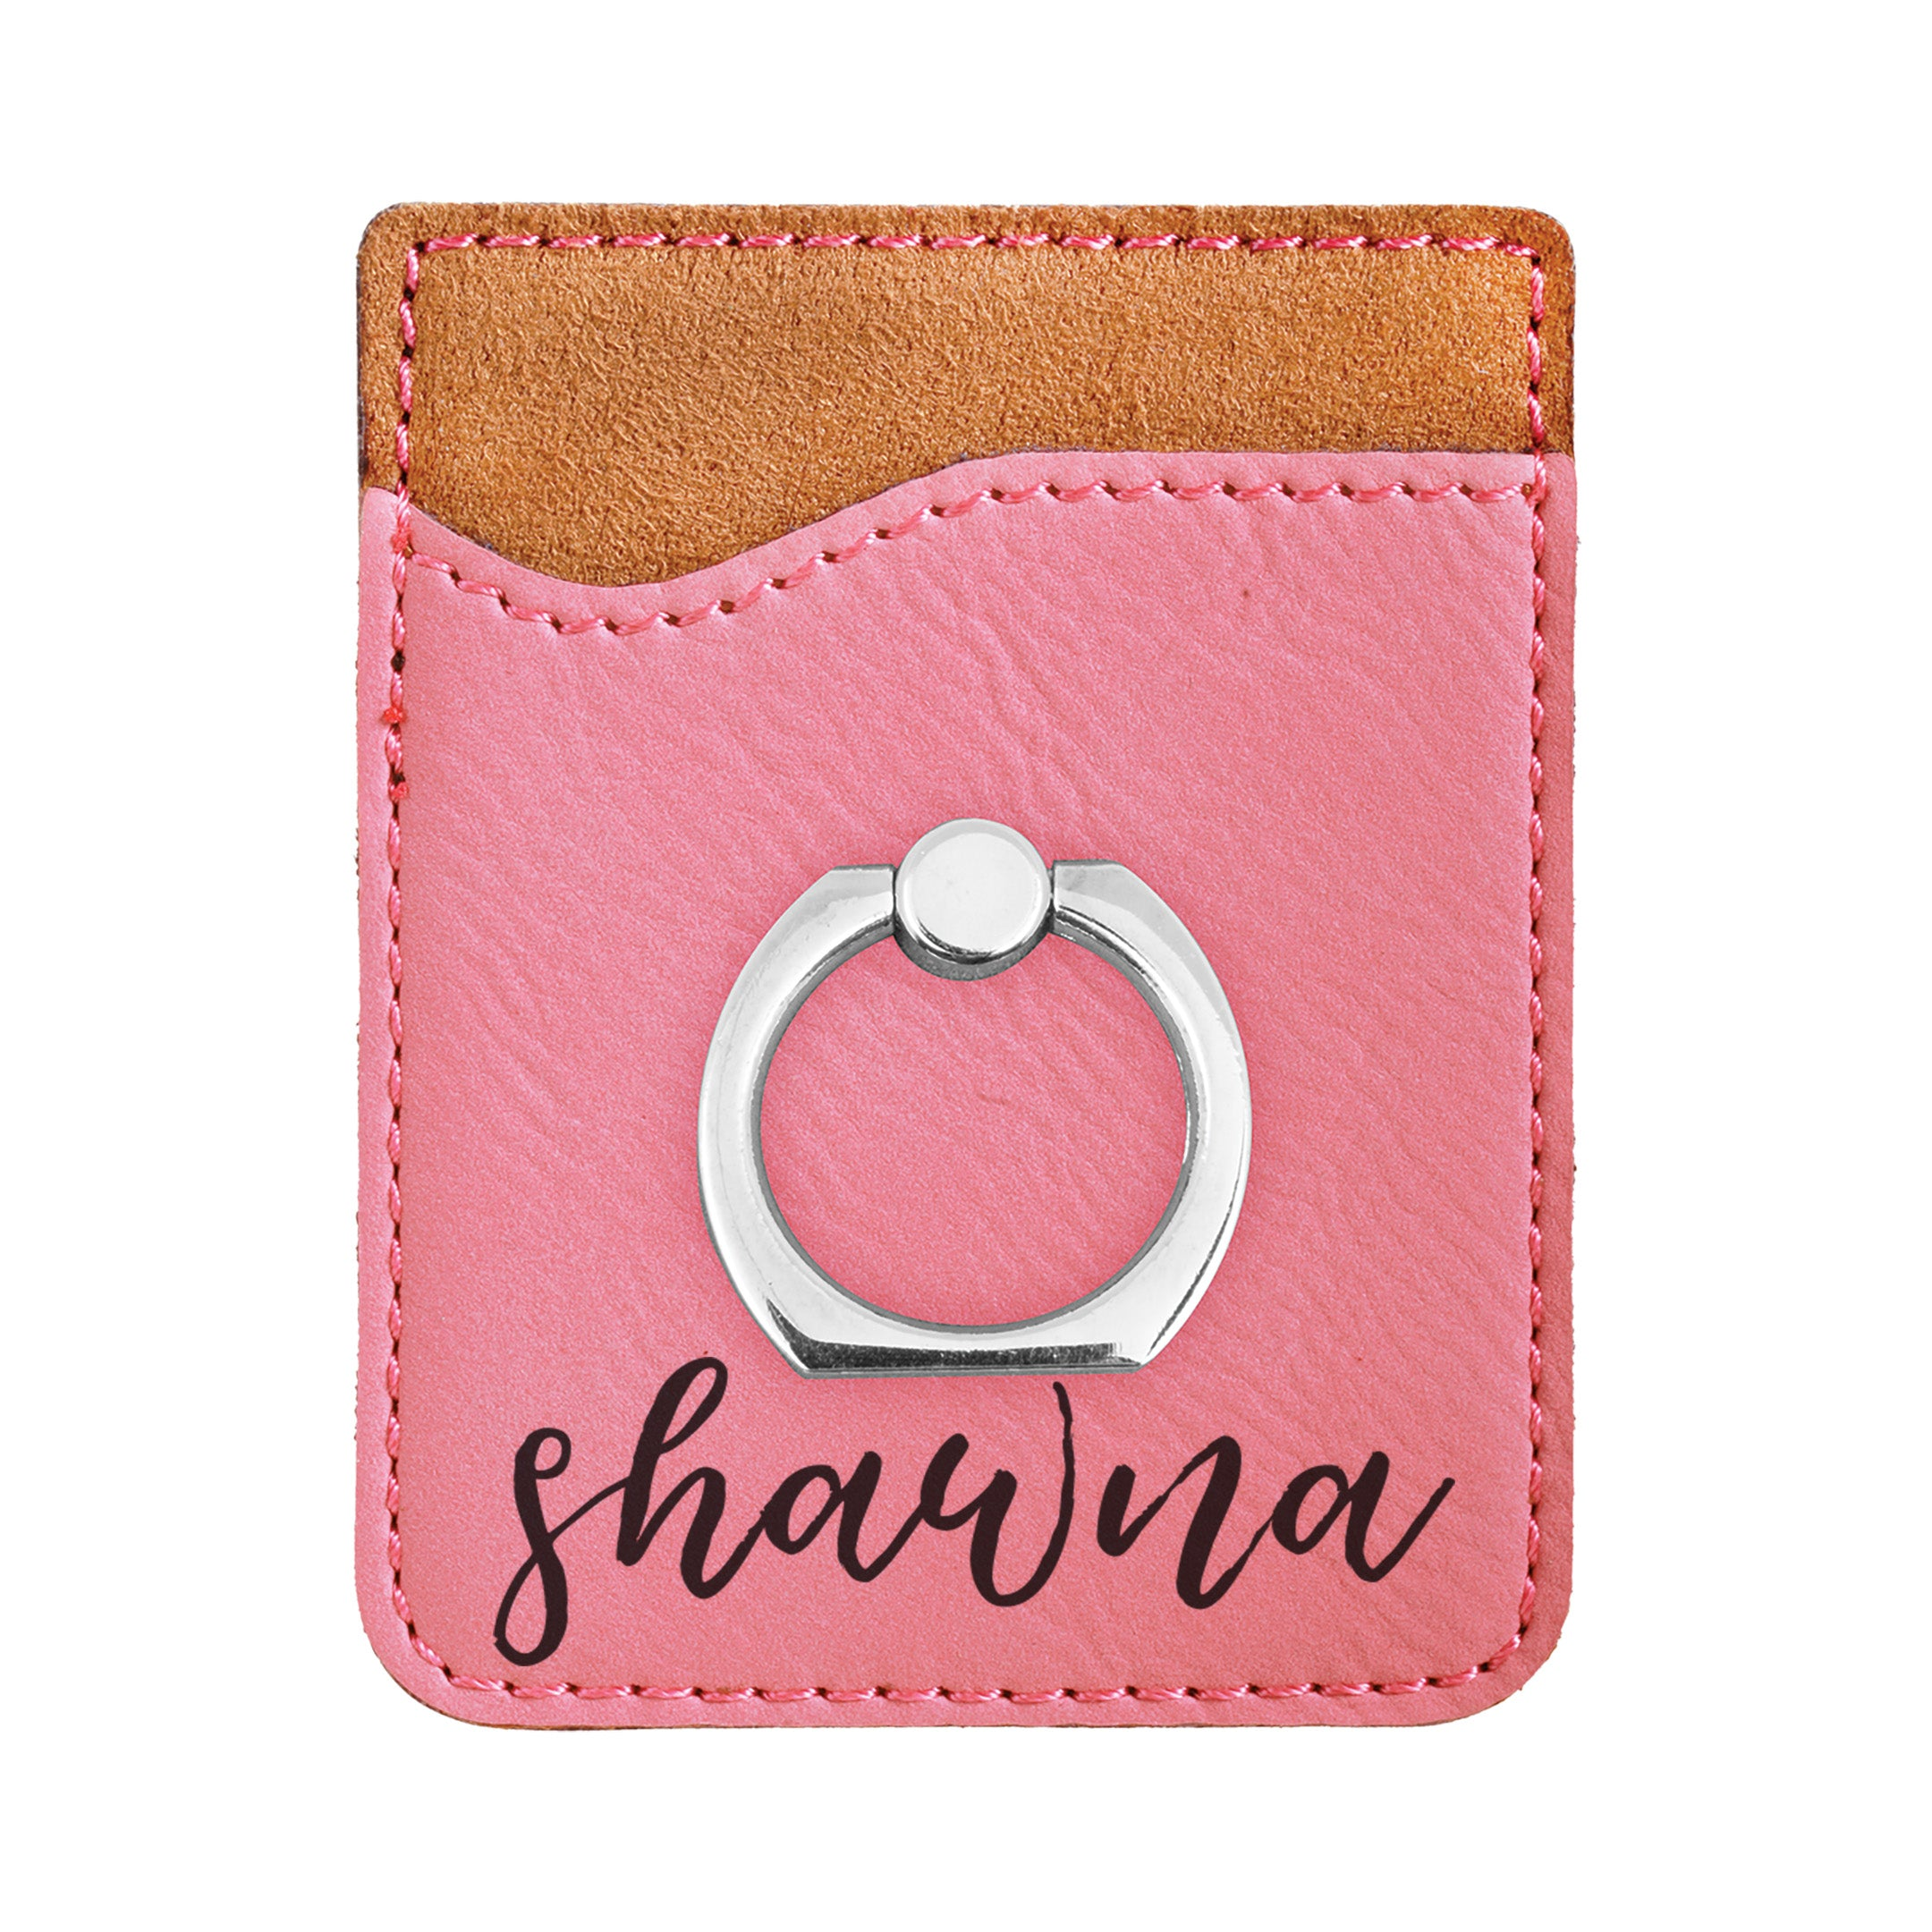 detailed look dbc17 0e5bc Personalized First Name Phone Wallet, Custom Engraved Phone Wallet, Cell  Phone Wallet with Stand, Credit Card Holder, Phone Pocket, Card Caddy,  iPhone ...